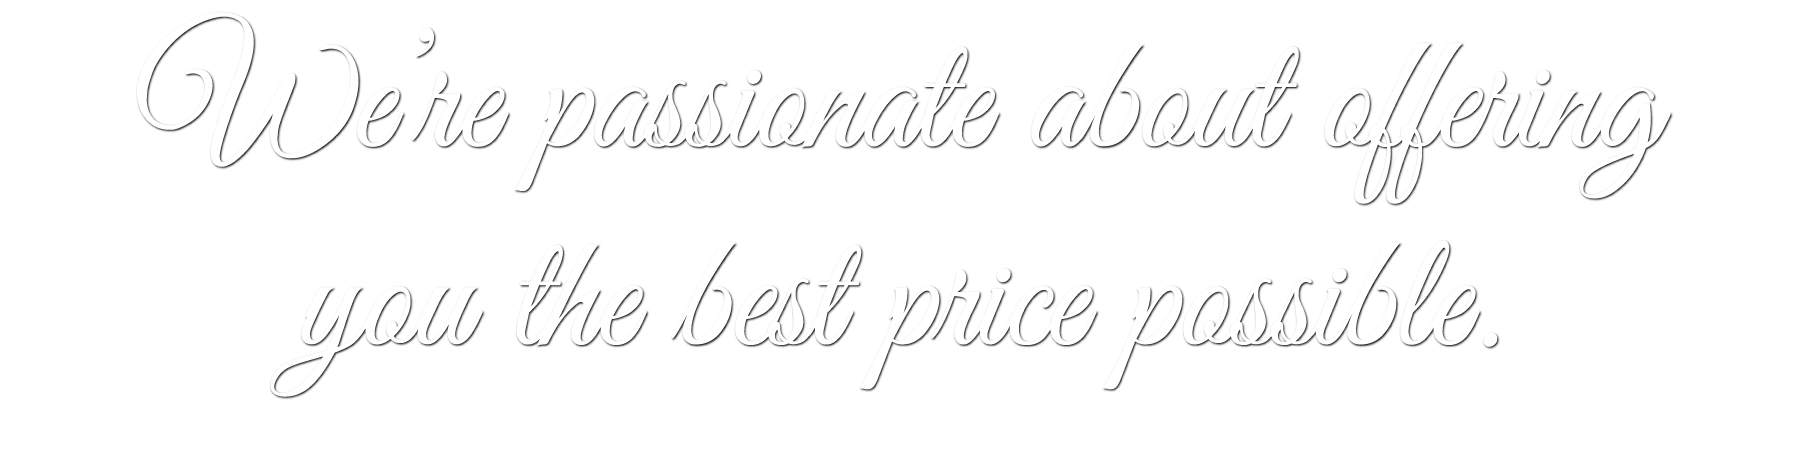 We're passionate about offering you the best price possible.